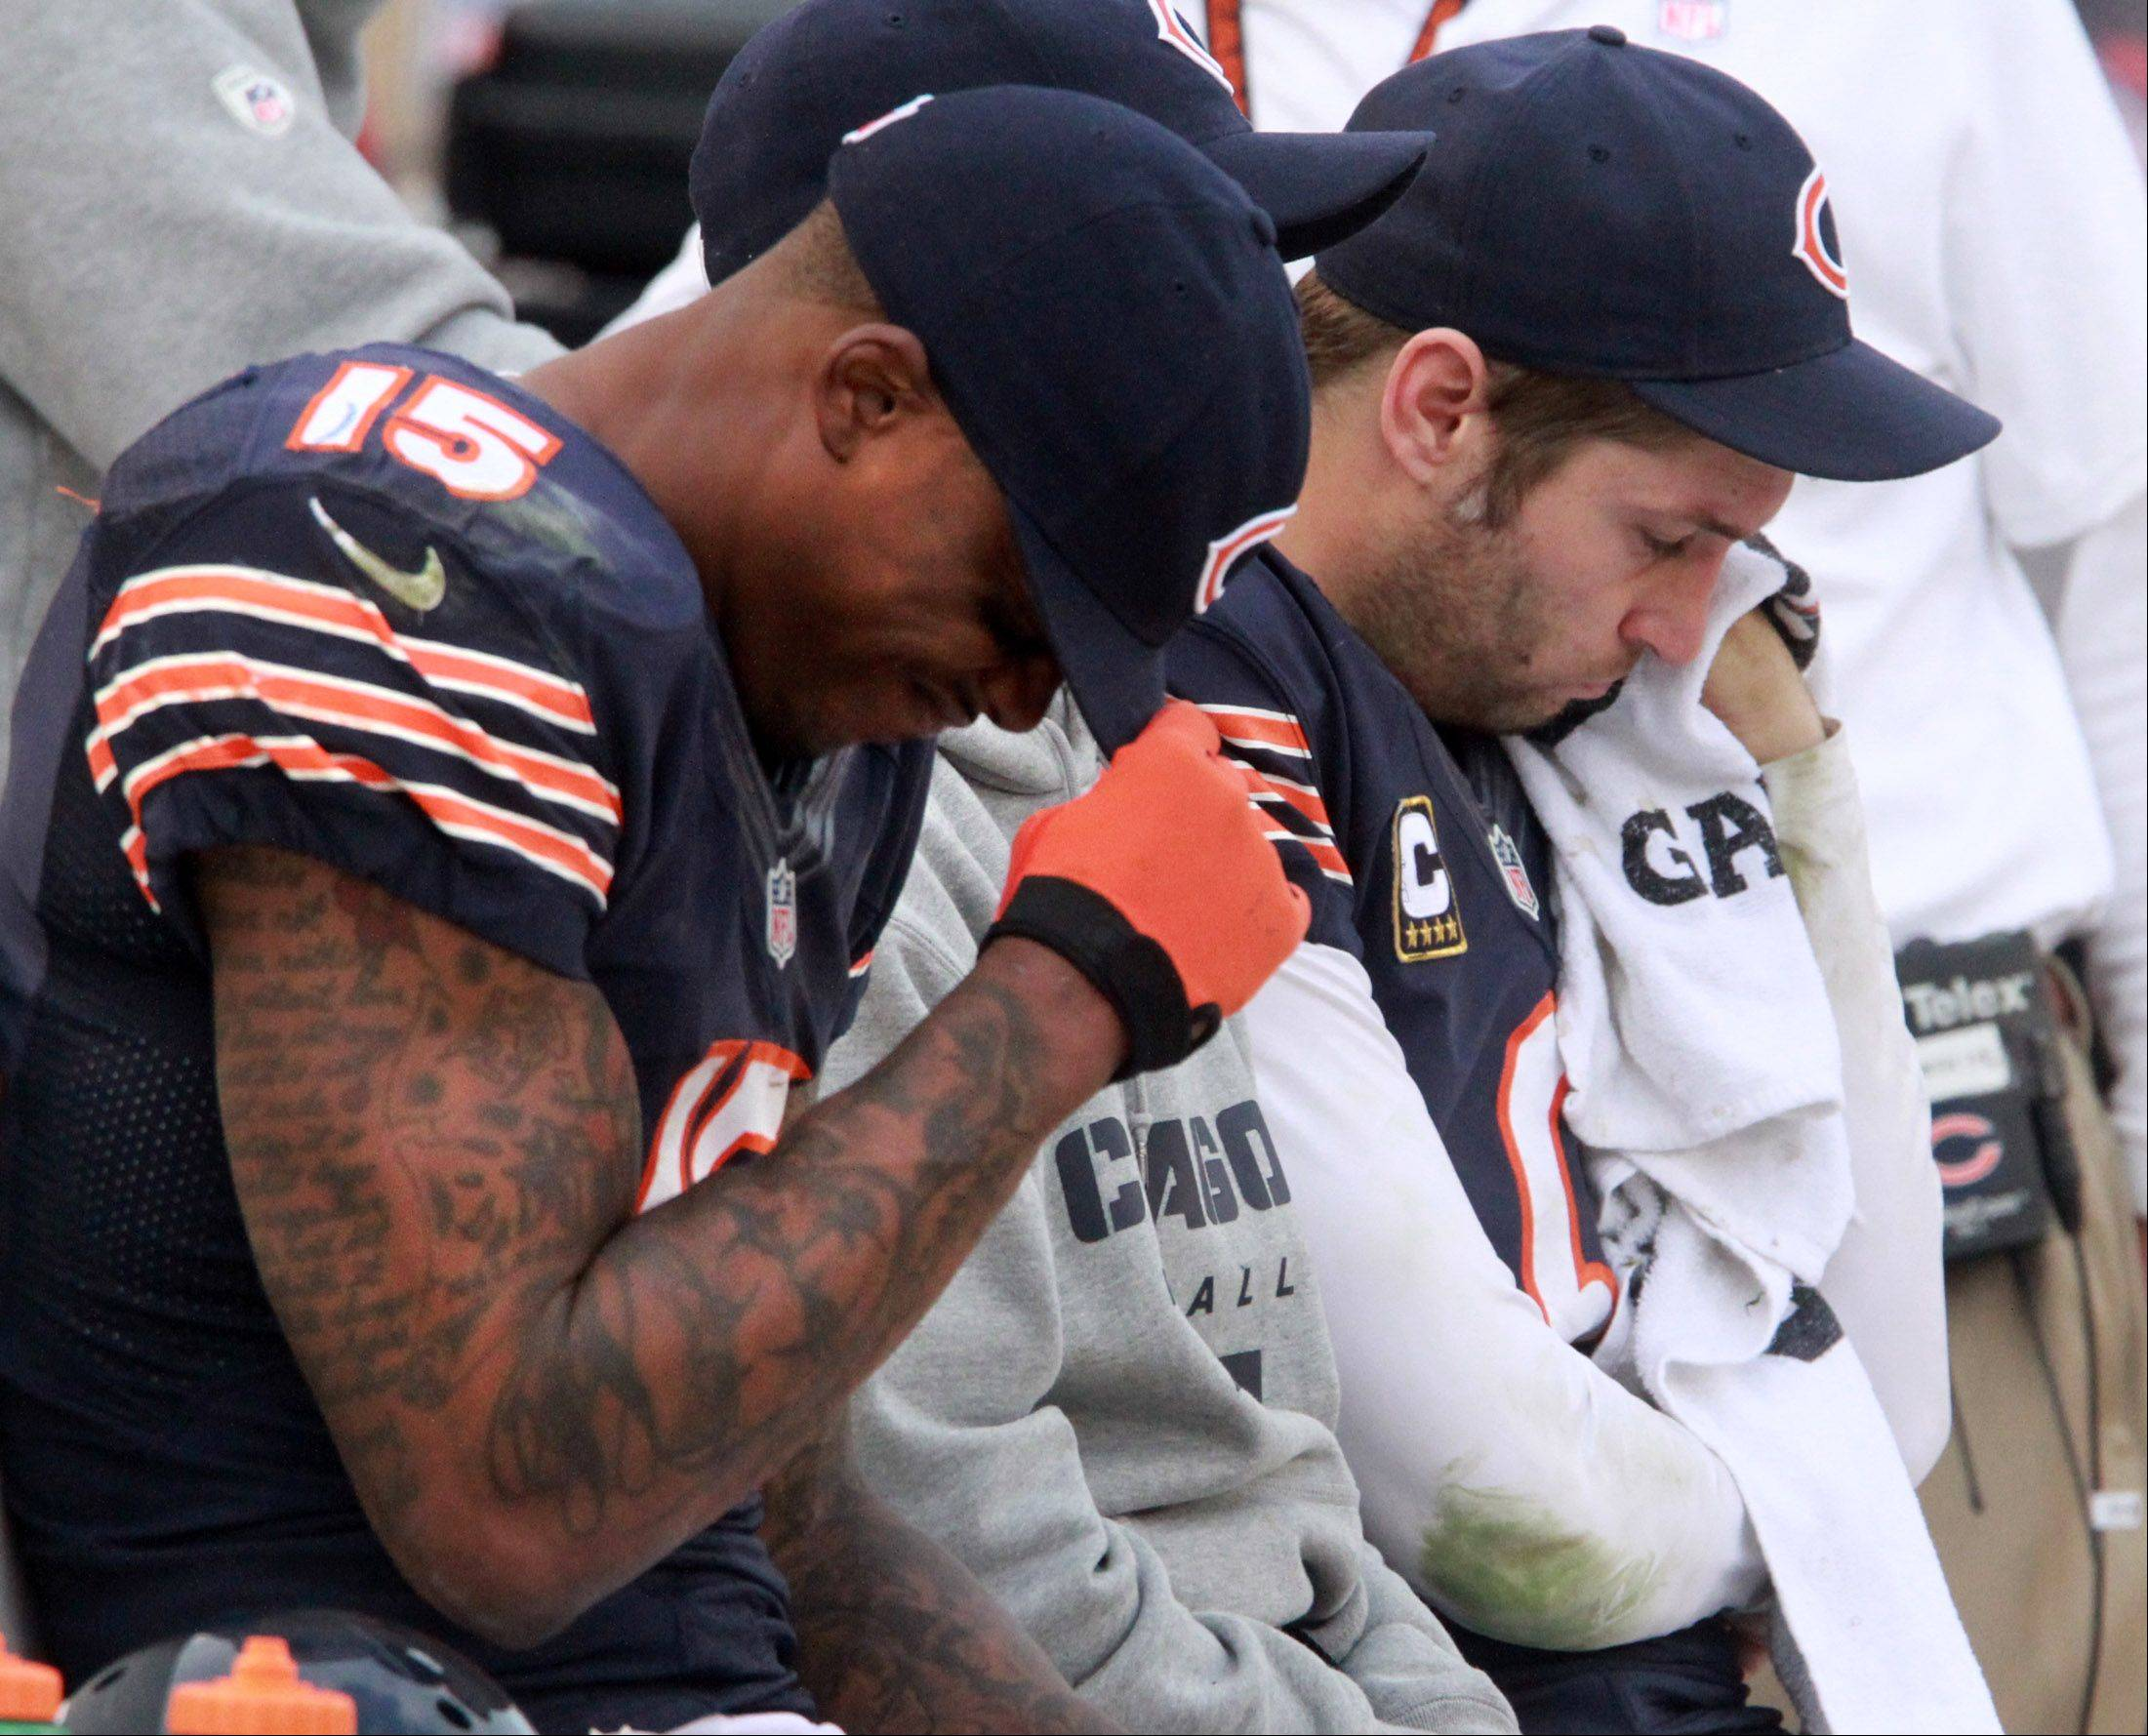 Chicago Bears wide receiver Brandon Marshall and quarterback Jay Cutler on the bench as the Seattle Seahawks score near the end of regulation at Soldier Field earlier this month.